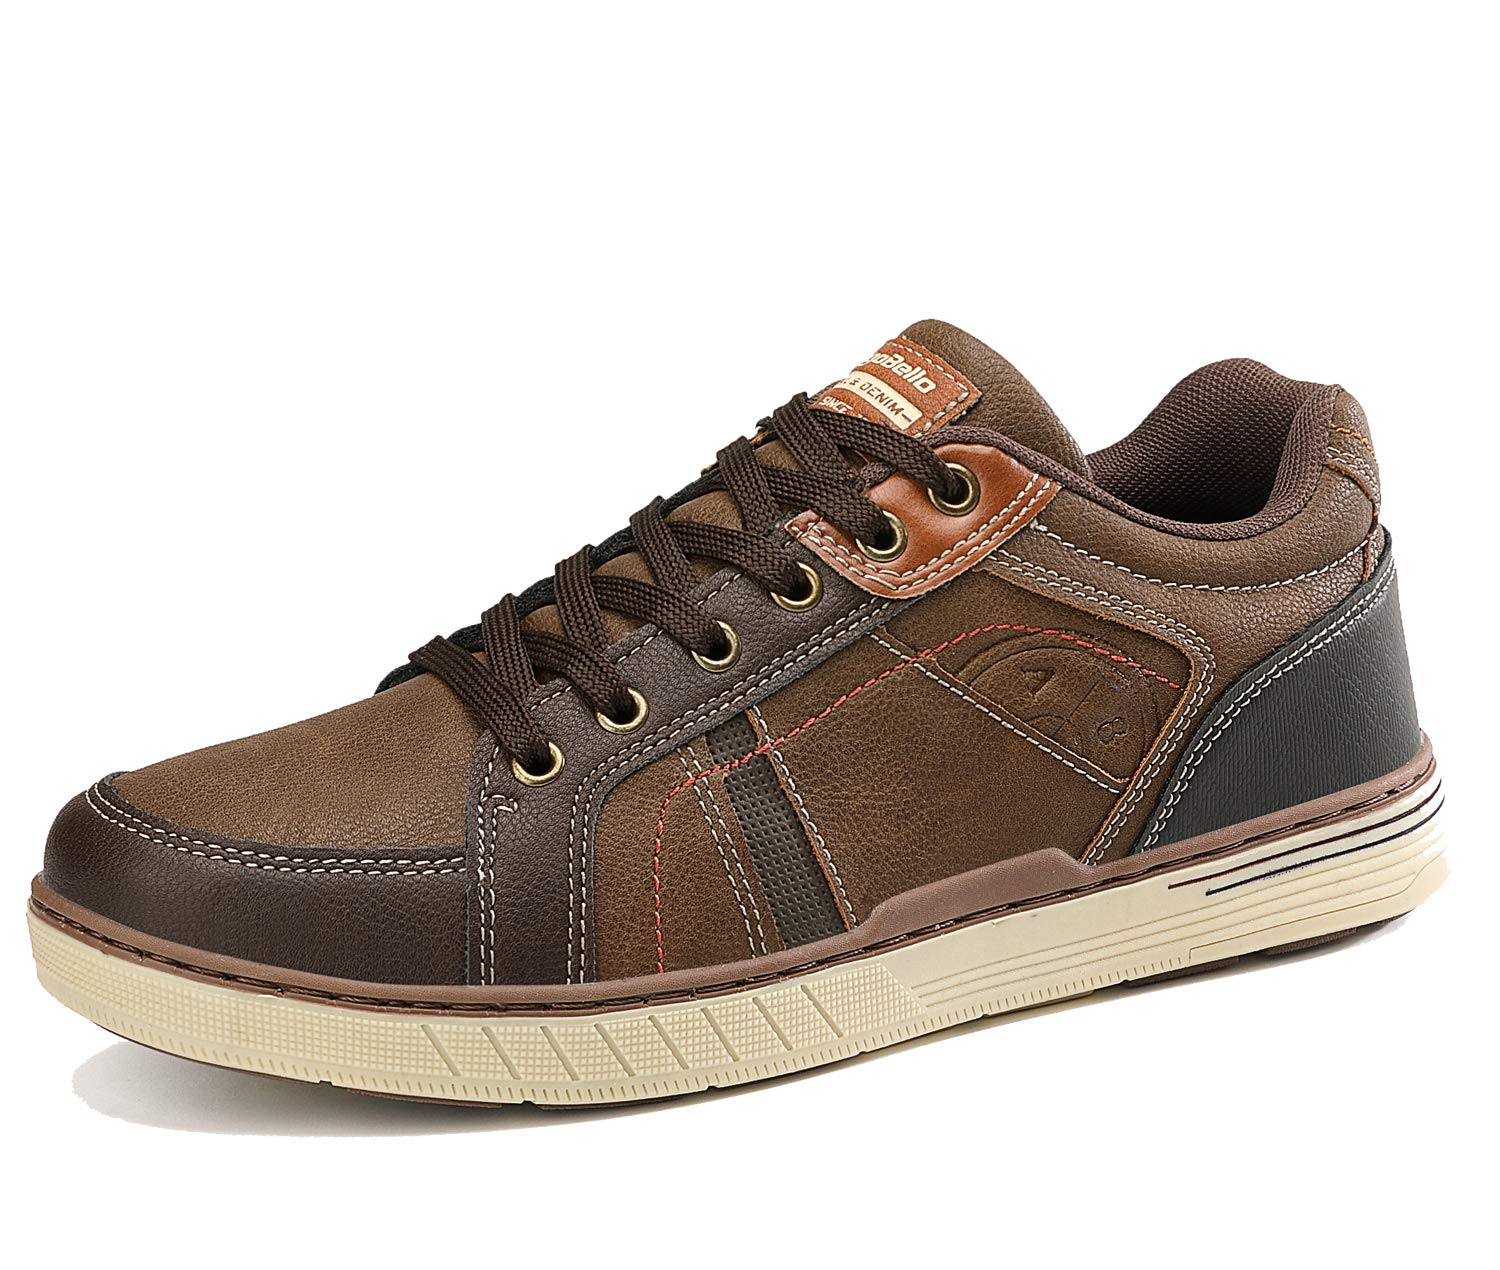 Mens Casual Shoes Trainers Walking Hiking Jogging Classic Business Outdoor Sneakers Running Size 7-11